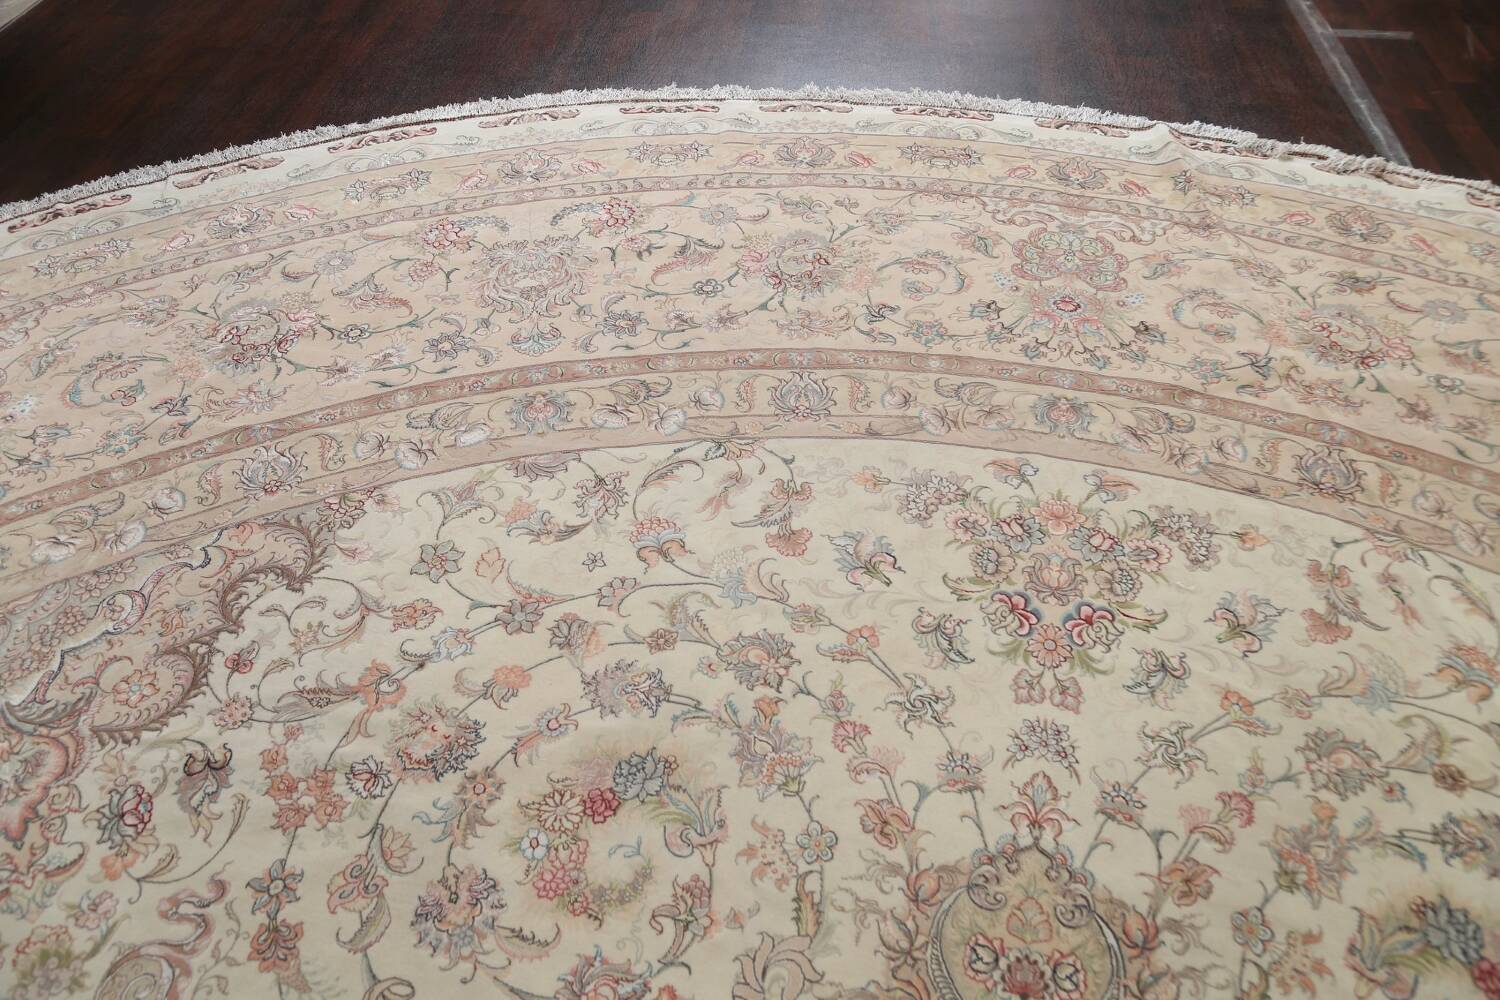 100% Vegetable Dye Floral Tabriz Persian Area Rug 22x23 Round image 12